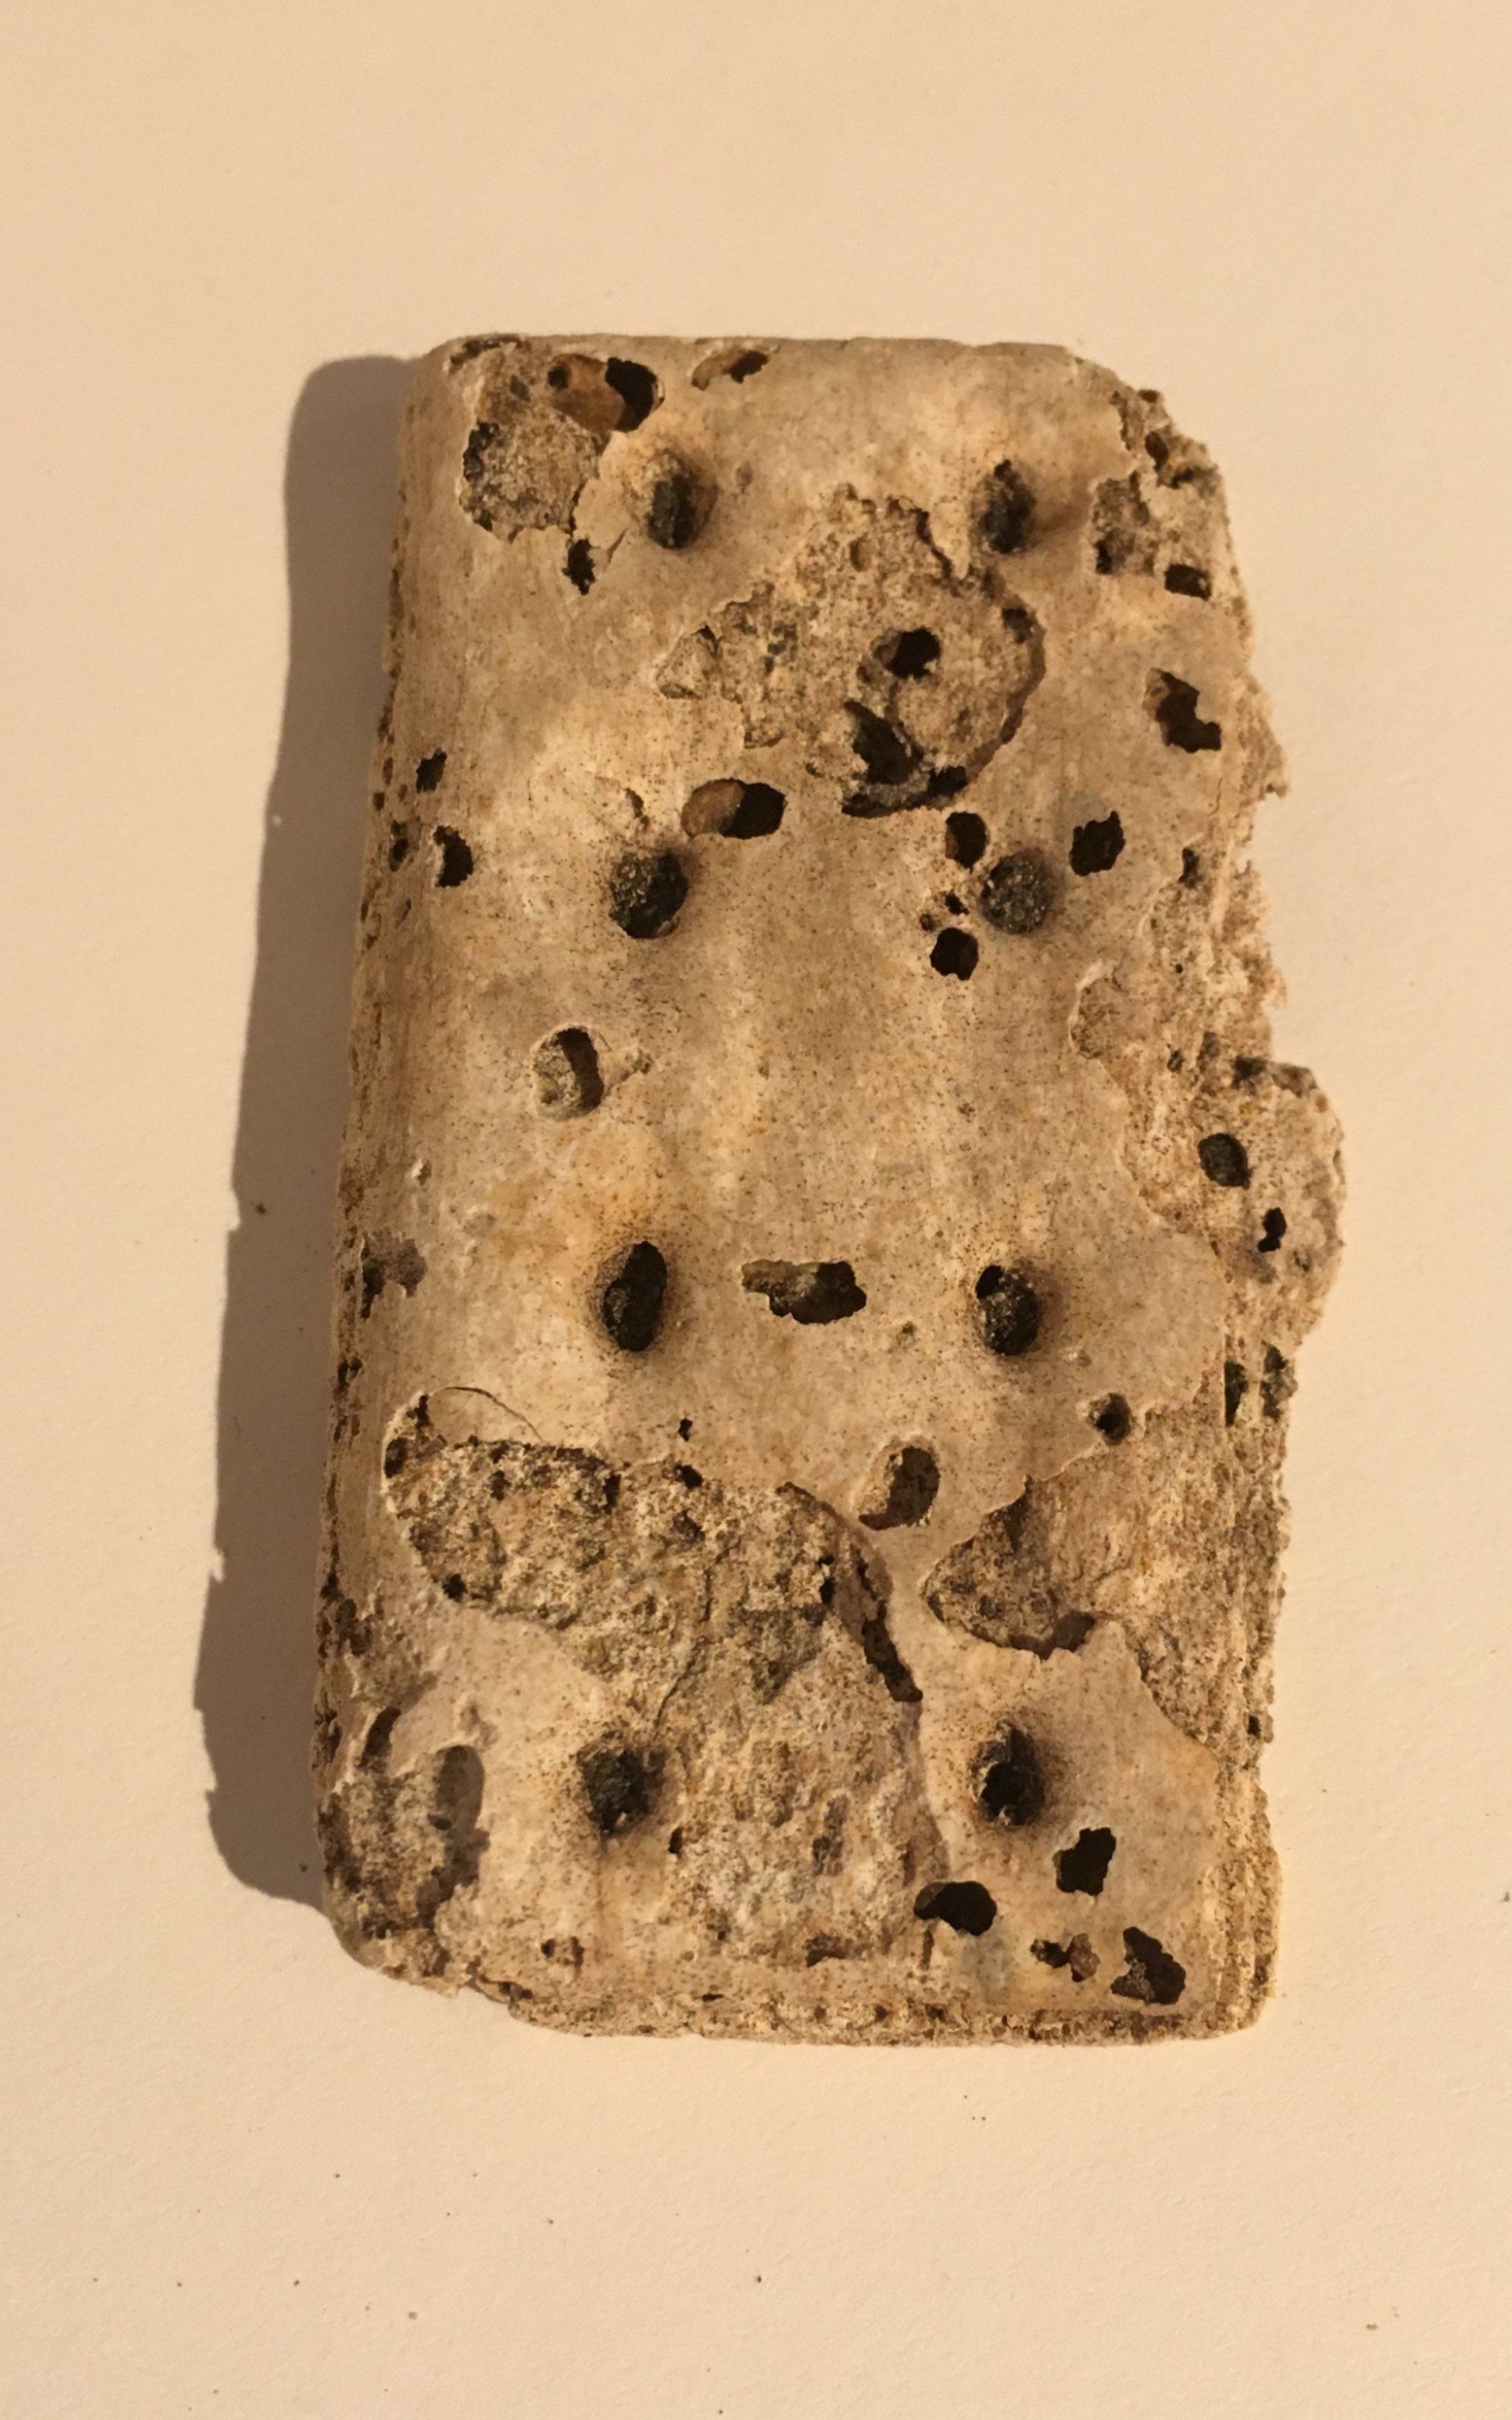 <h3>Hardtack</h3> <br> <p><strong>1860s</strong></p> <br> <p>A soldier's bread ration called hardtack was issued as a biscuit or cracker made of flour, water, and sometimes salt. It was baked up to six times, became very hard, and could last more than one hundred years, as in these examples. Hardtack was known to harbor insects, and had many other names as well: molar breakers, tooth dullers, and worm castles.</p>